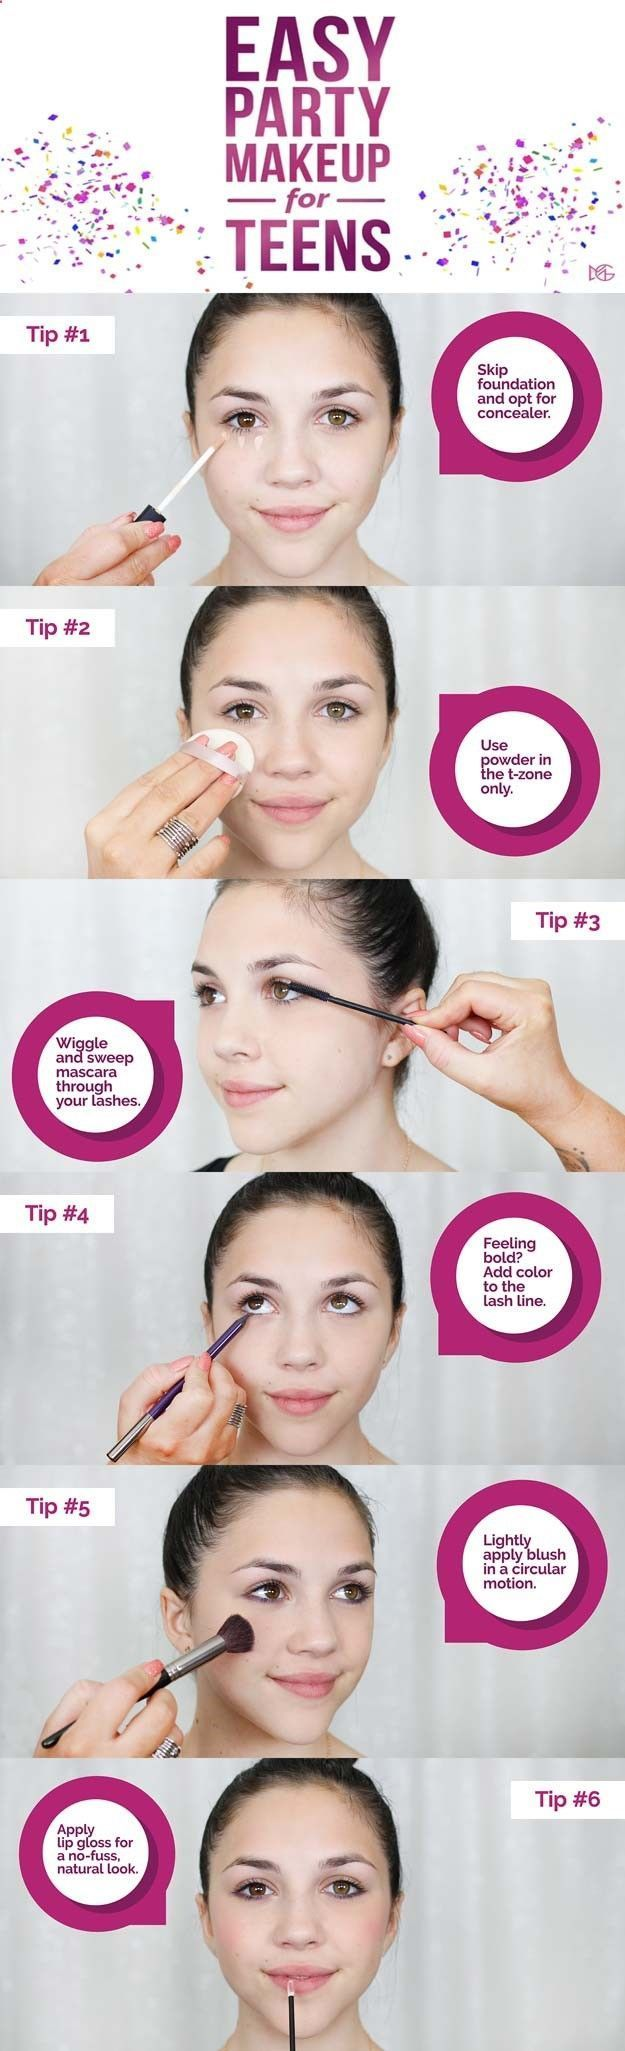 Best Makeup Tutorials for Teens -Easy Makeup Artist for Teens - Easy Makeup Ideas for Beginners - Step by Step Tutorials for Foundation, Eye Shadow, Lipstick, Cheeks, Contour, Eyebrows and Eyes - Awesome Makeup Hacks and Tips for Simple DIY Beauty - Day a https://www.youtube.com/channel/UC76YOQIJa6Gej0_FuhRQxJg